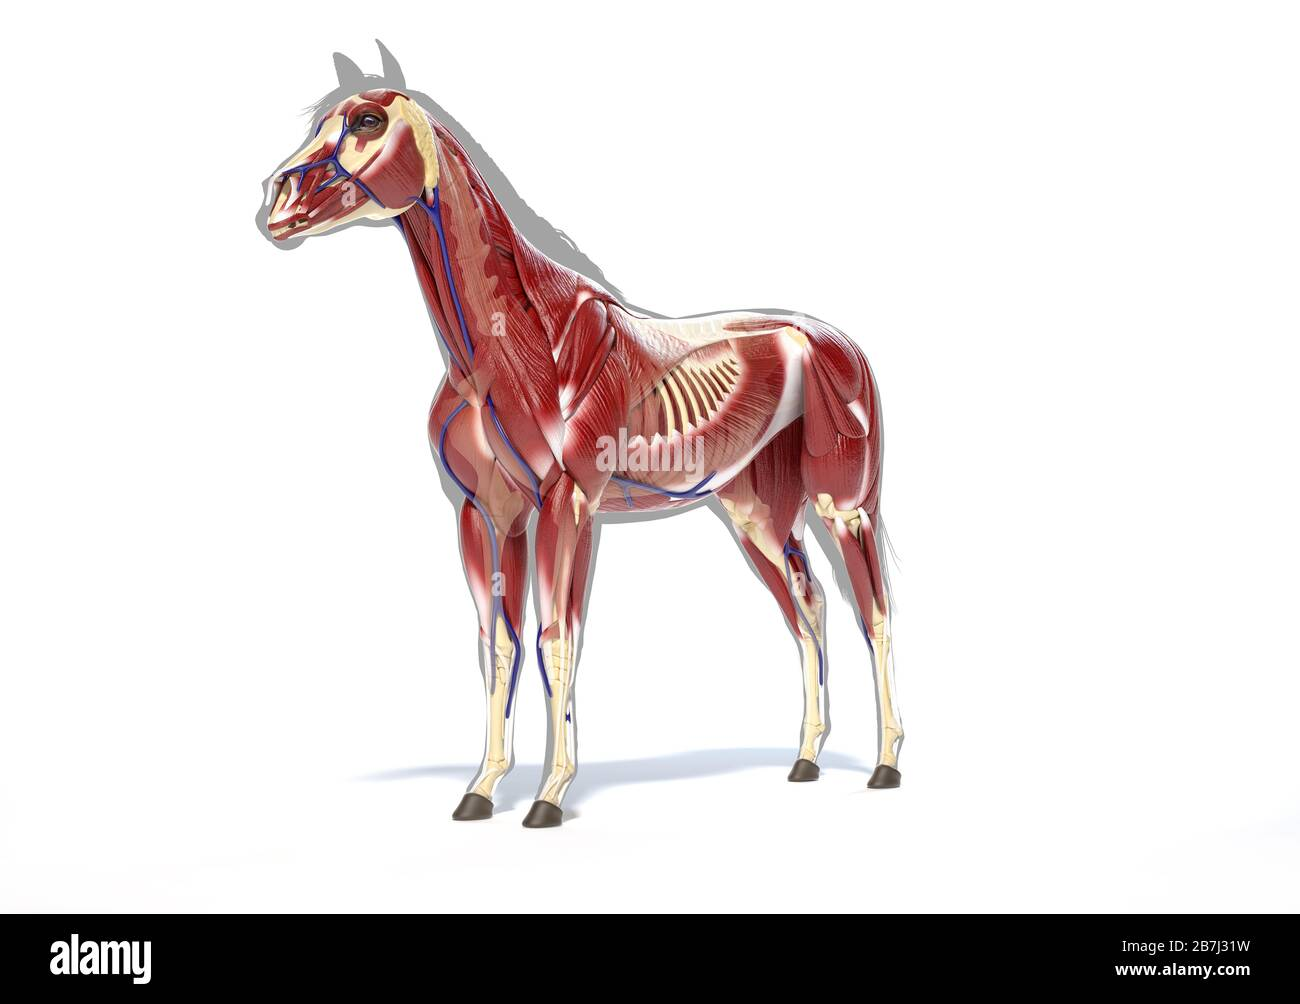 Horse Anatomy Muscular System Over Grey Silhouette Front Side Perspective On White Background Clipping Path Included Stock Photo Alamy